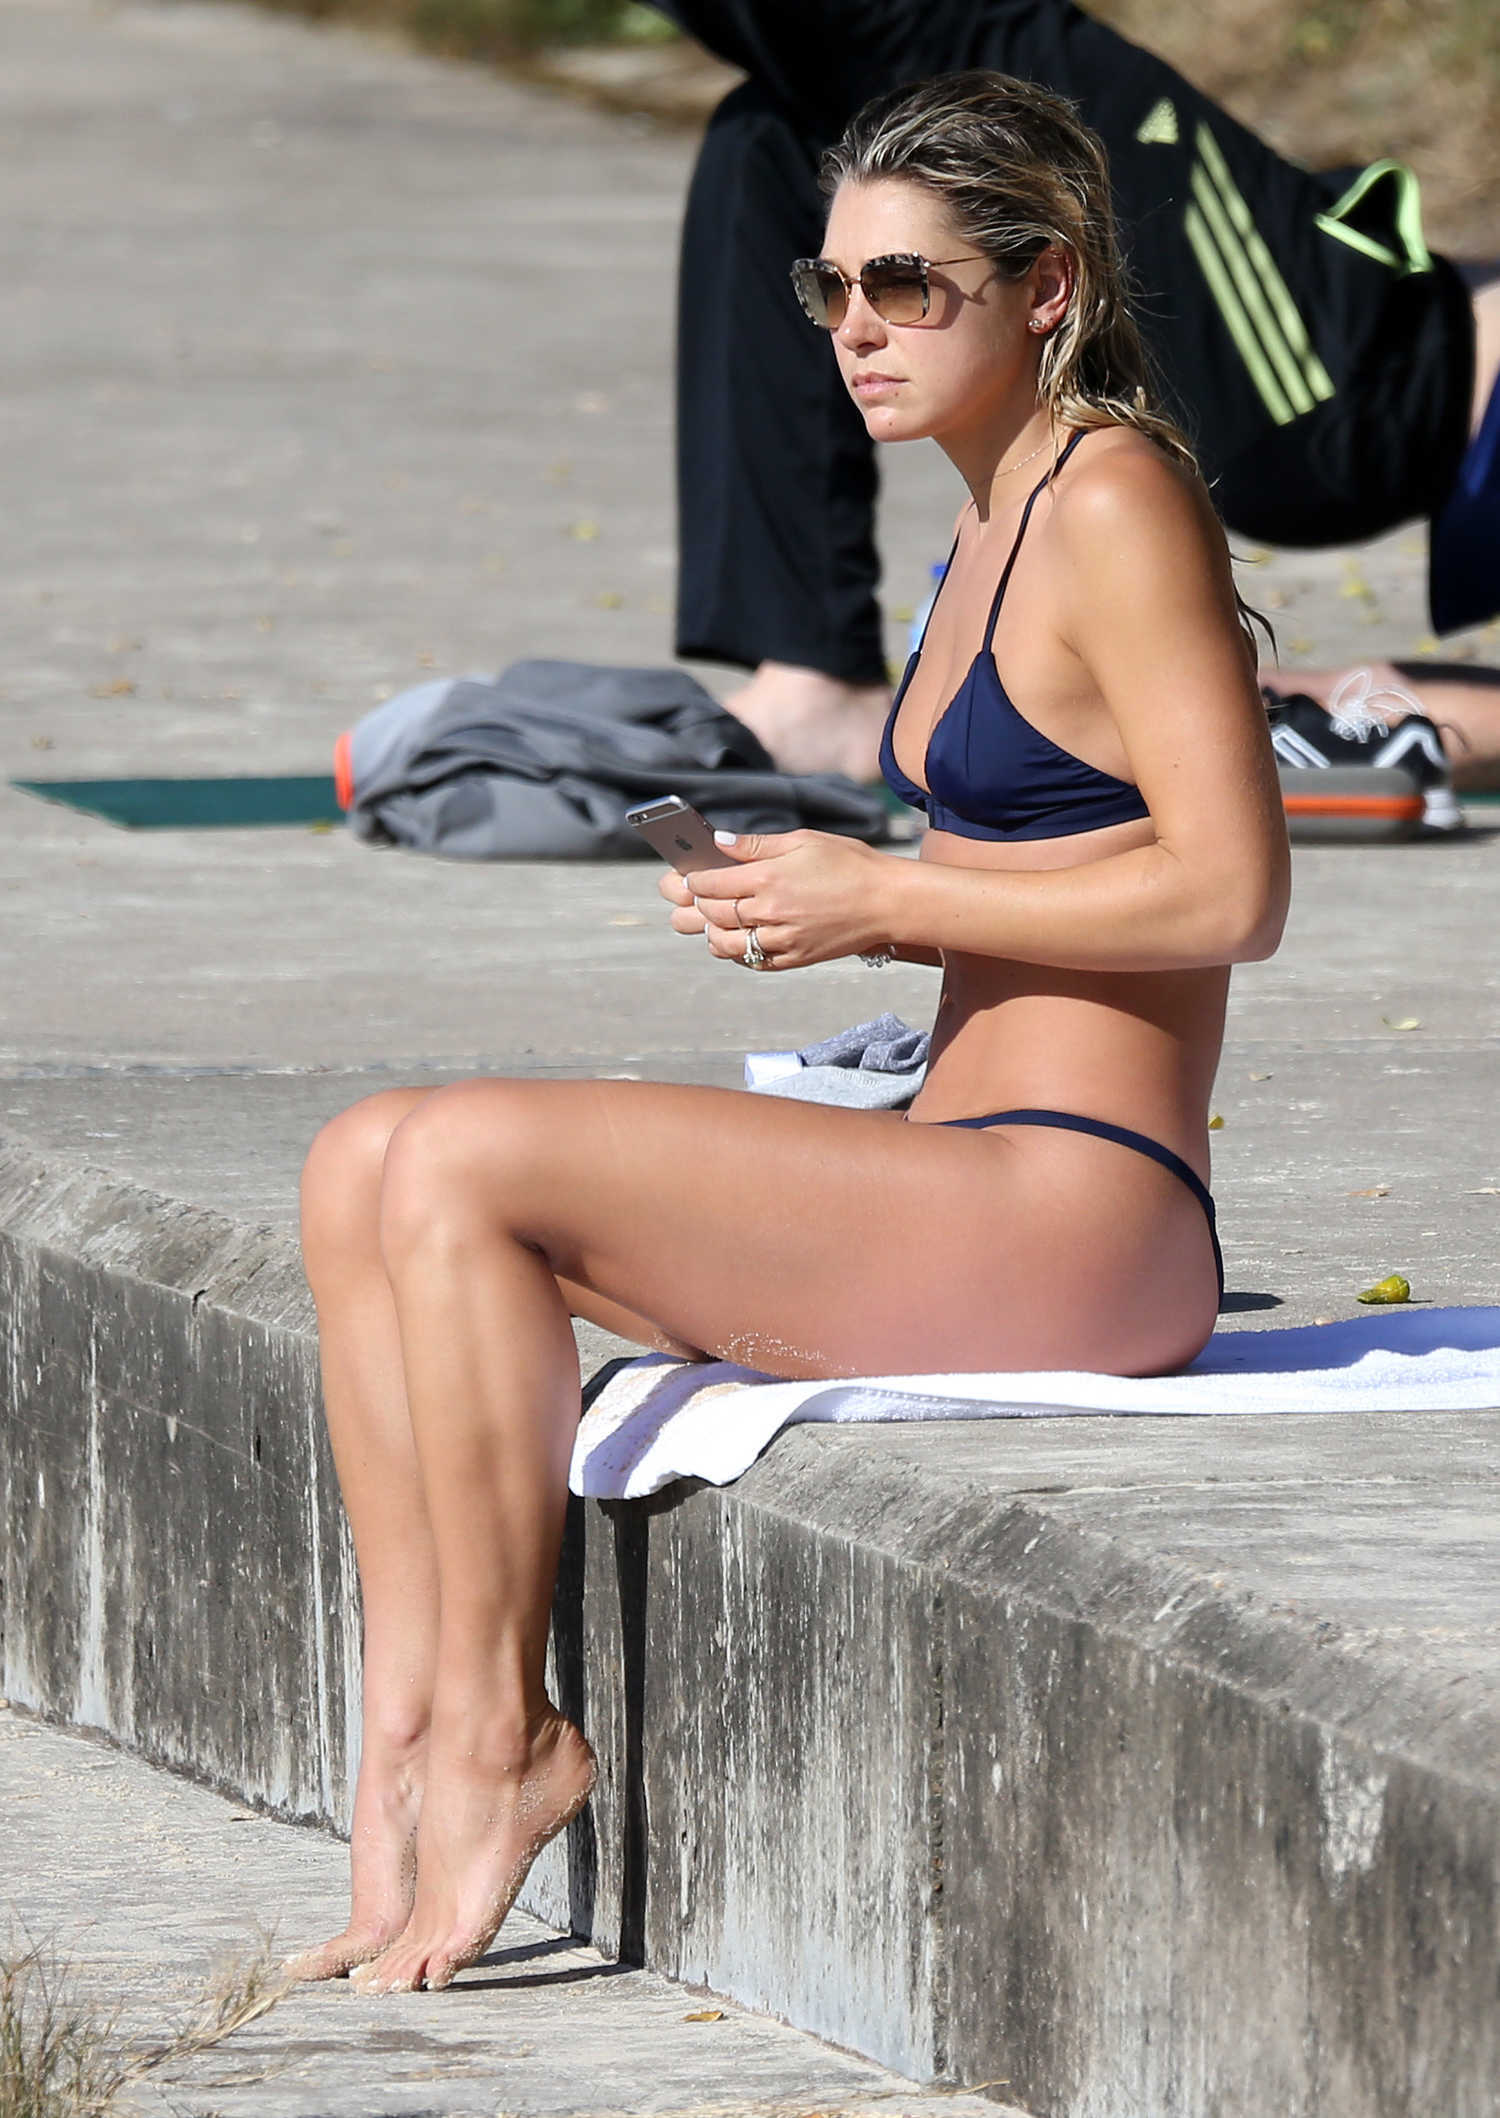 Ashley Hart Shows Off Her Bikini Body At Bondi Beach In